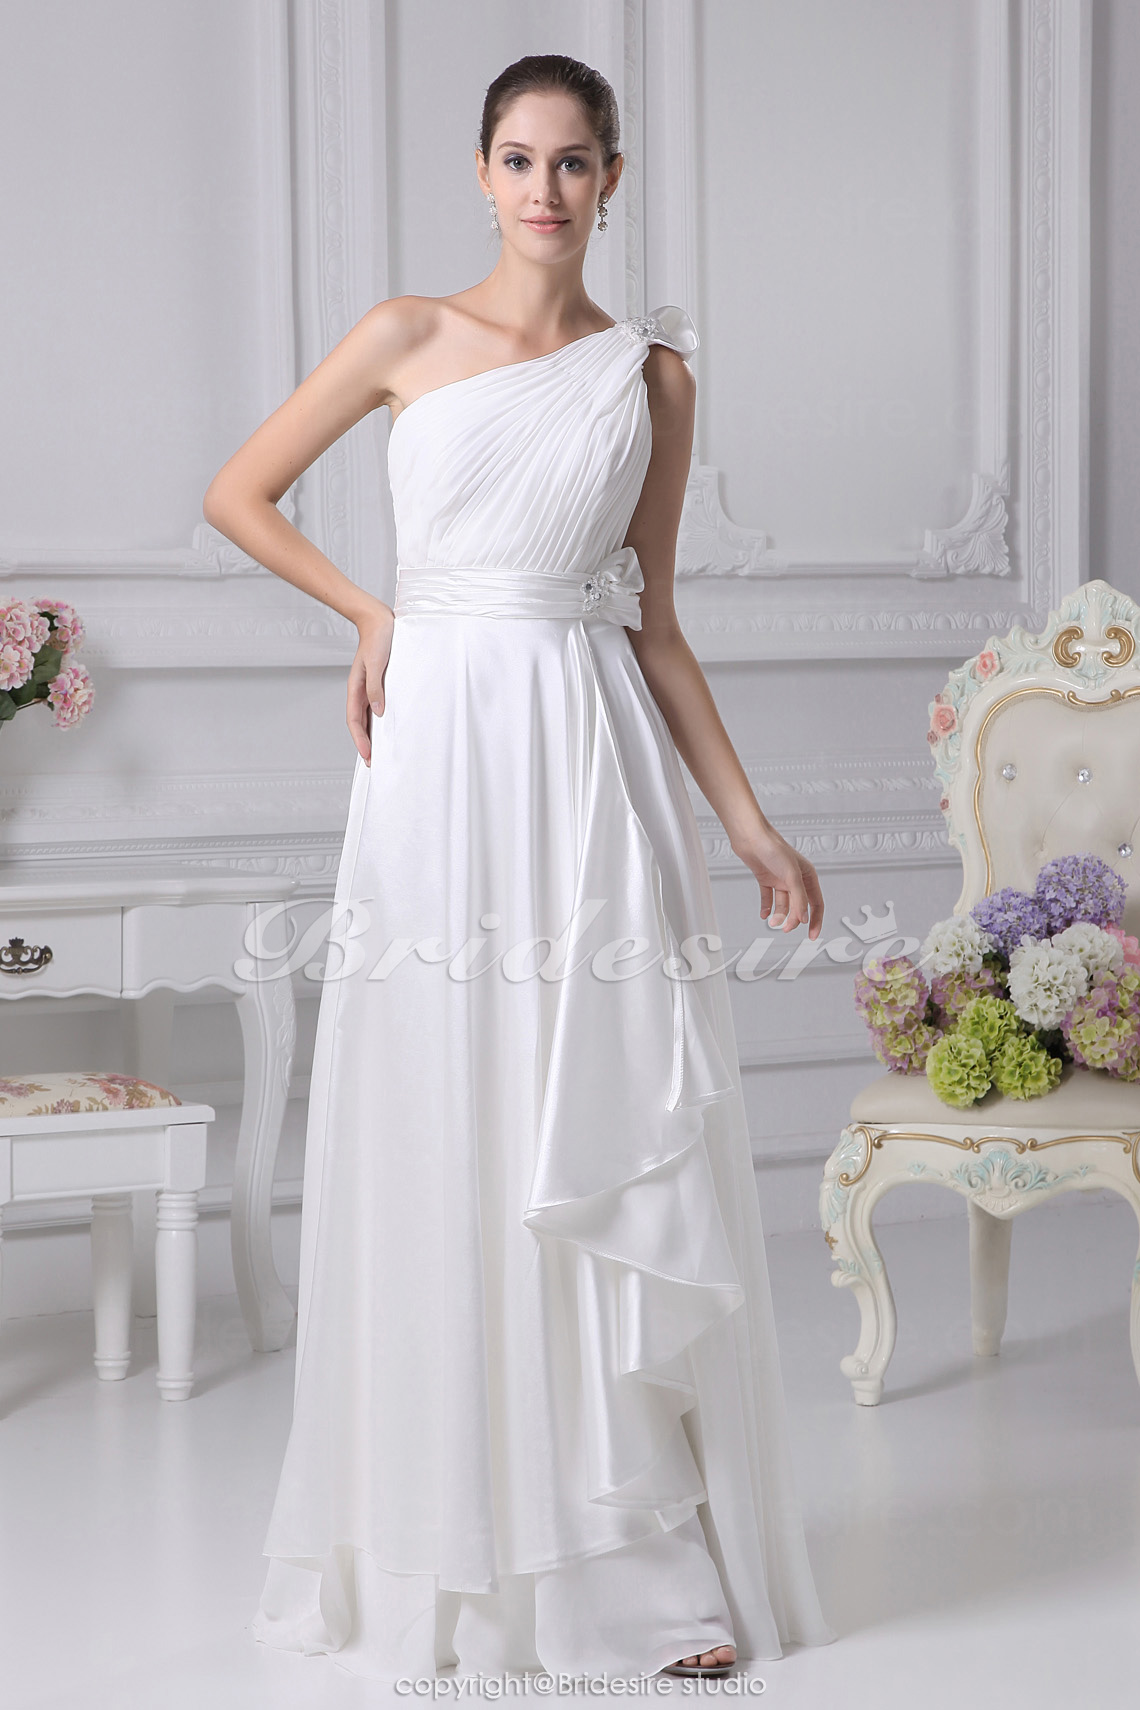 One Shoulder Floor-length Sleeveless Chiffon Stretch Satin Wedding Dress